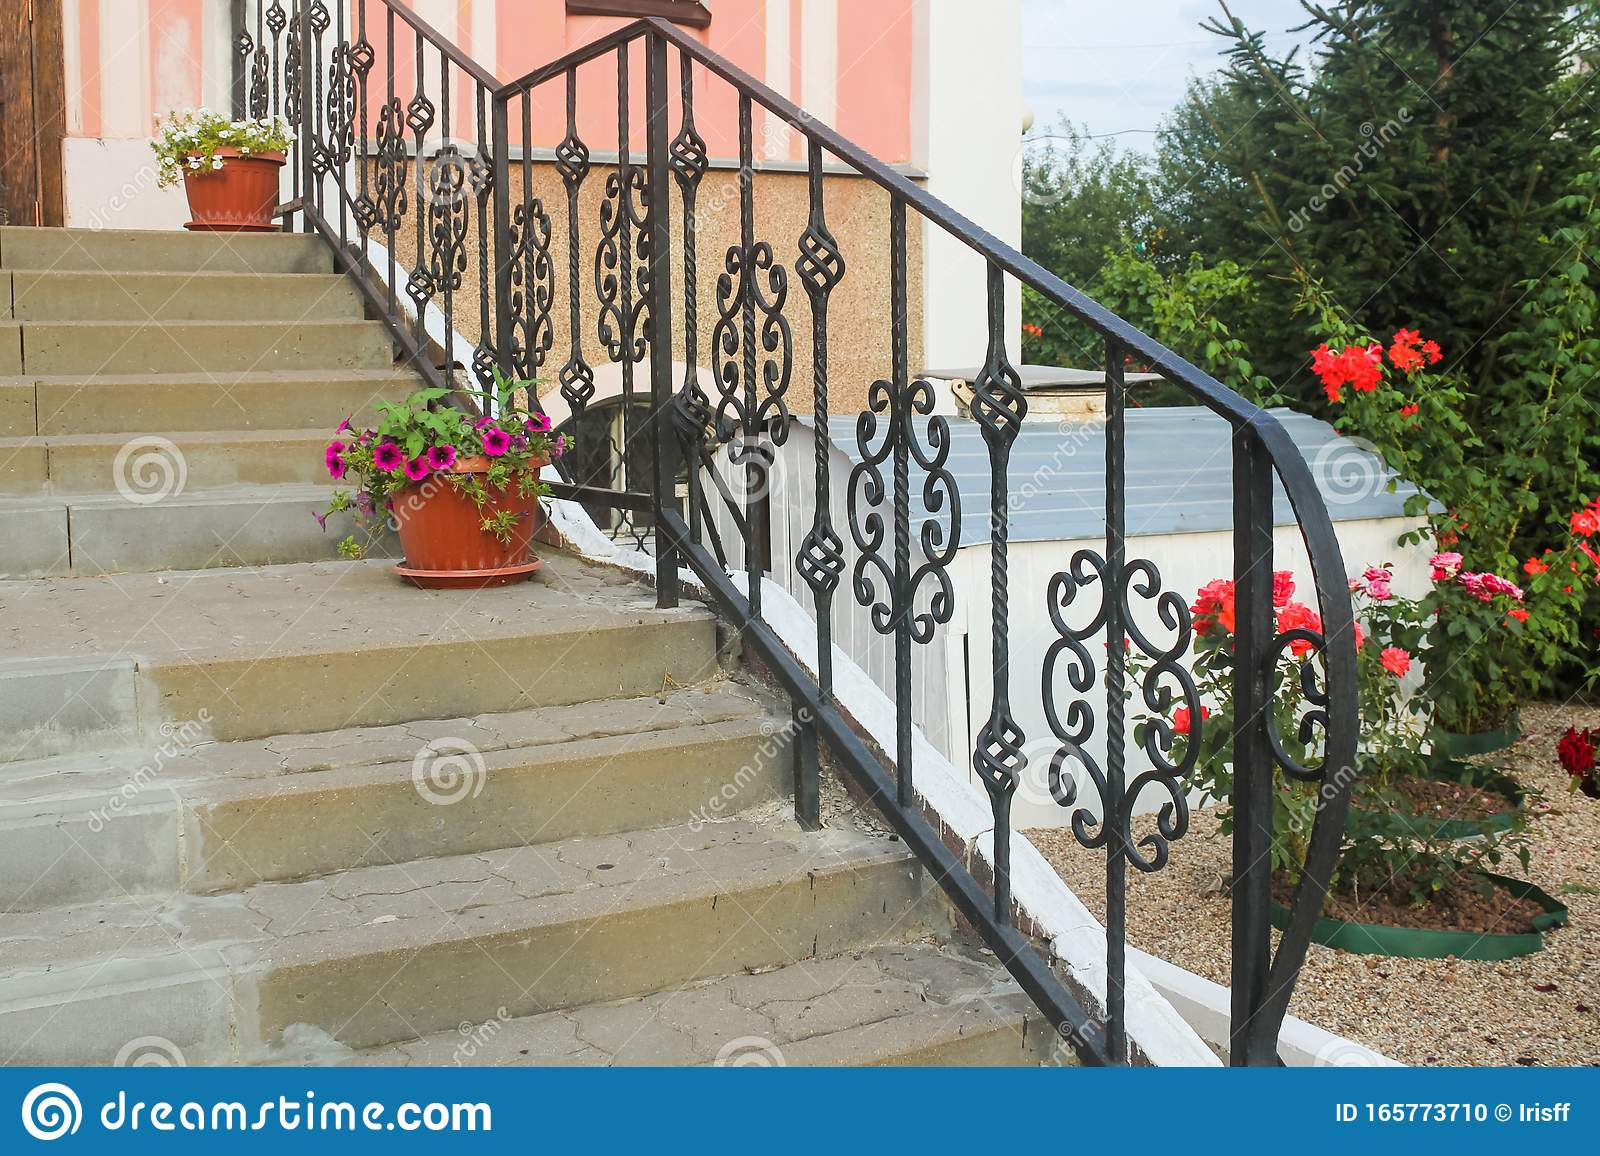 Image of: Openwork Wrought Iron Railing Stairs Stock Photo Image Of Stairs Decorative 165773710